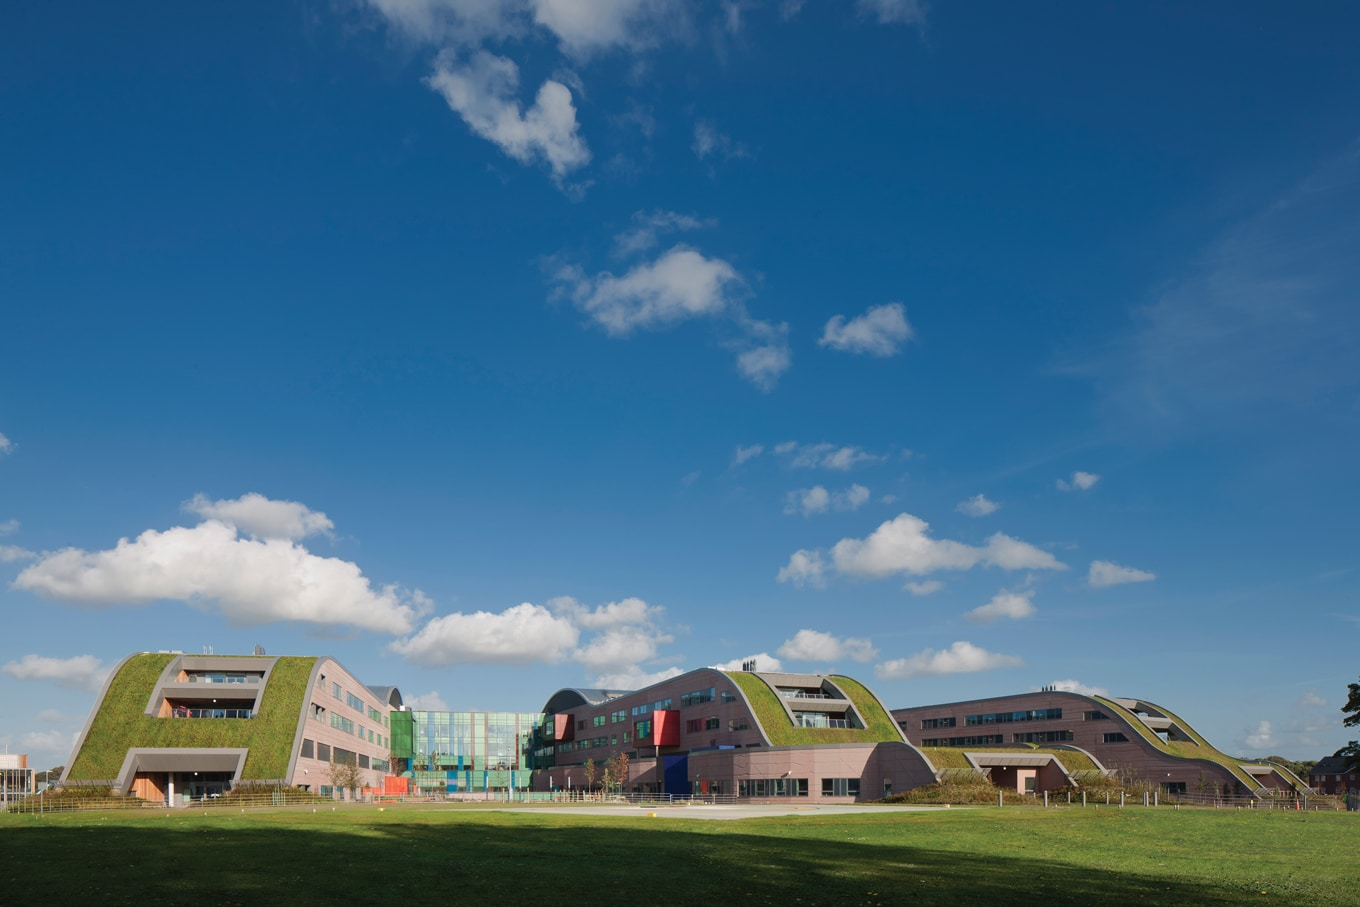 Alder Hey Children's Hospital, trailblazing health park